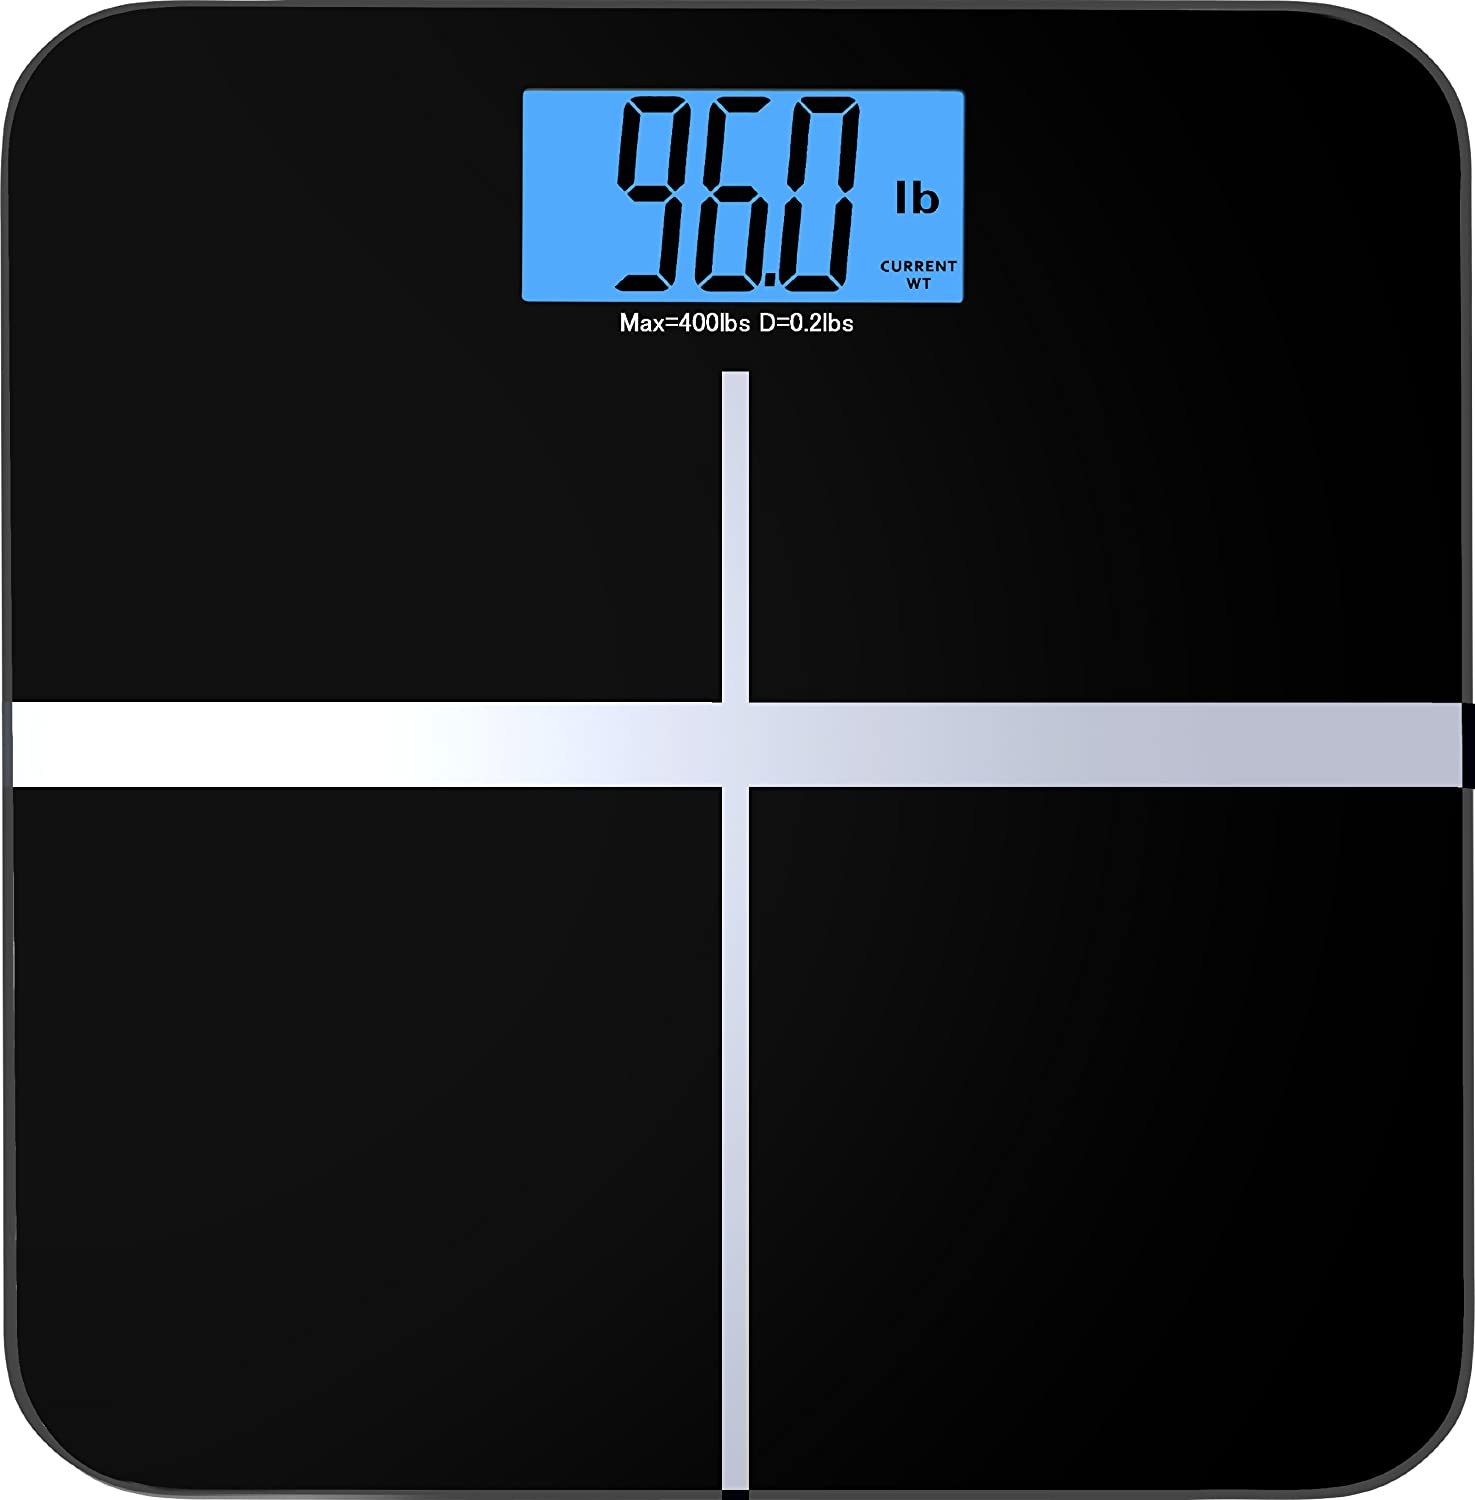 Bathroom scale accuracy consistency - Amazon Com Balancefrom C400blk High Accuracy Premium Digital Bathroom Scale With 3 6 X Large Backlight Display Sports Outdoors